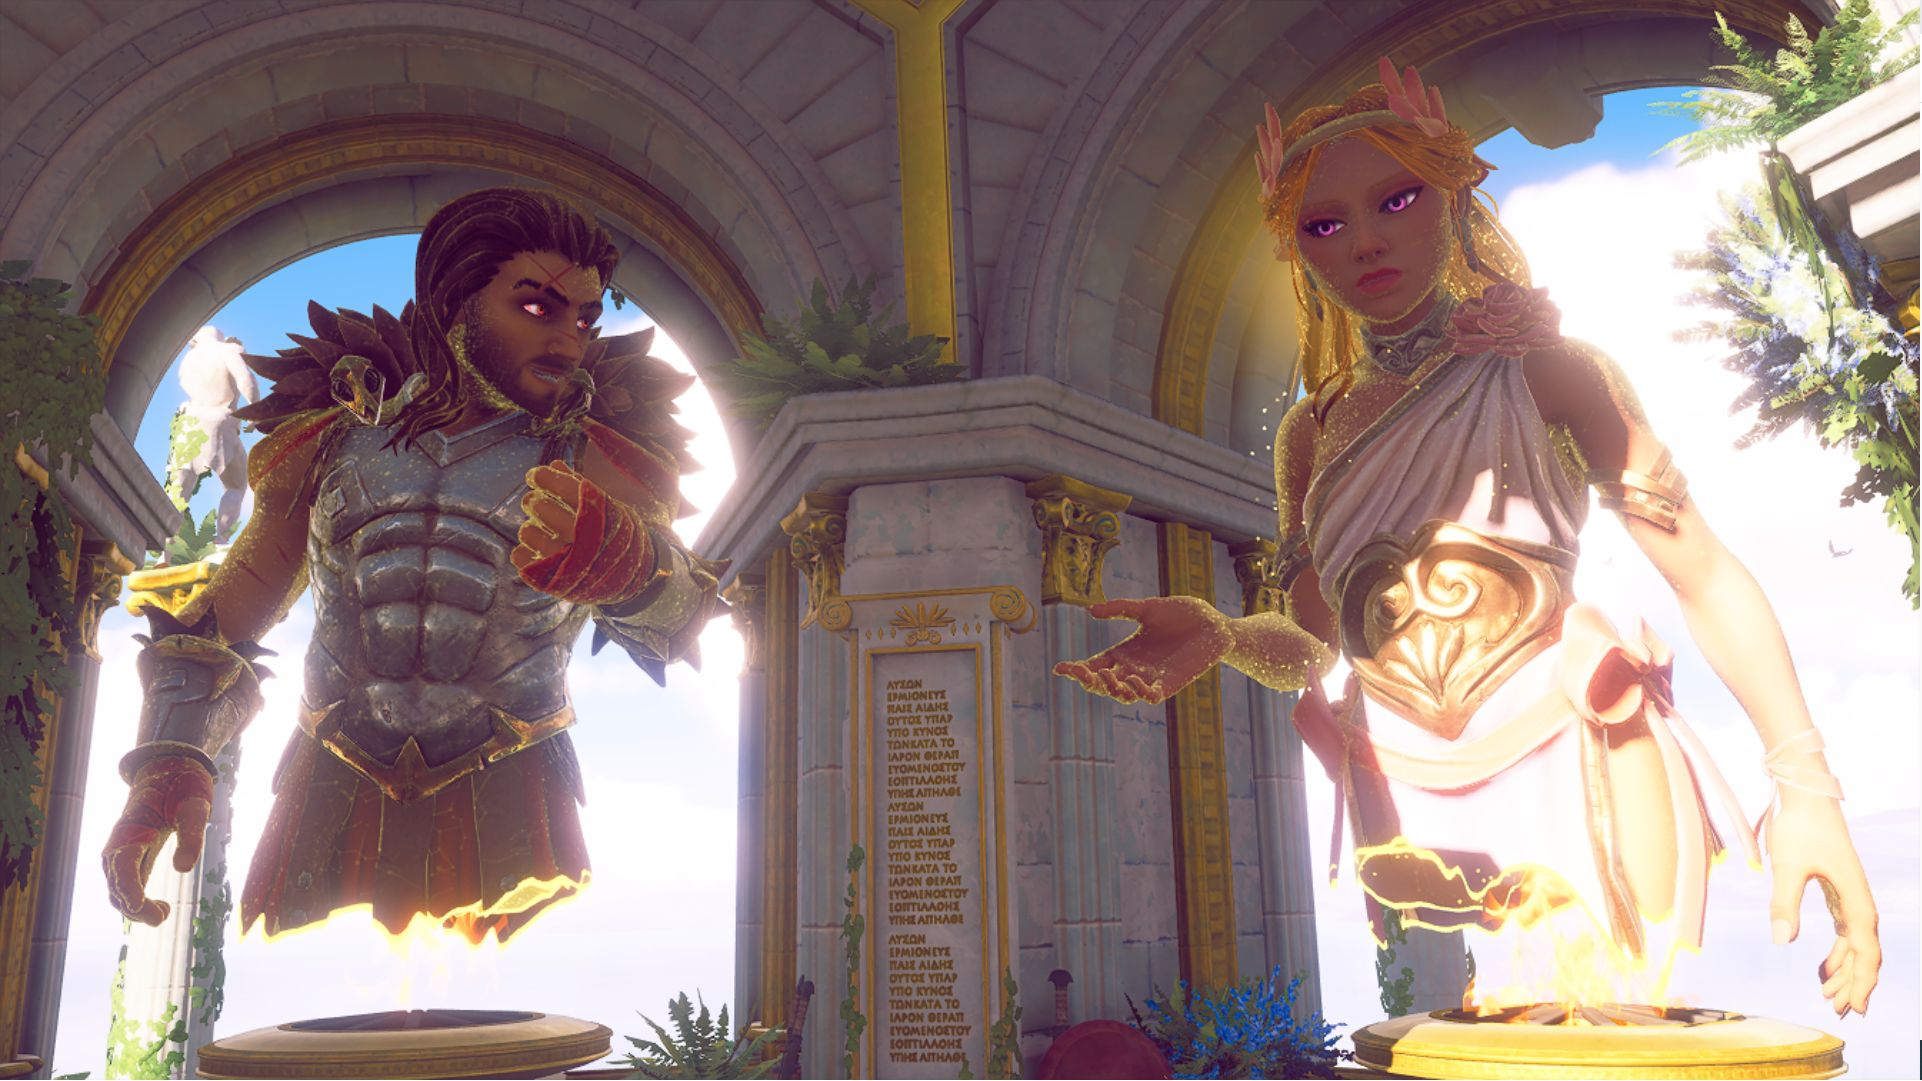 Aphrodite stares vacantly into the distances whilst Ares looks towards her, apparently talking enthusiastically.